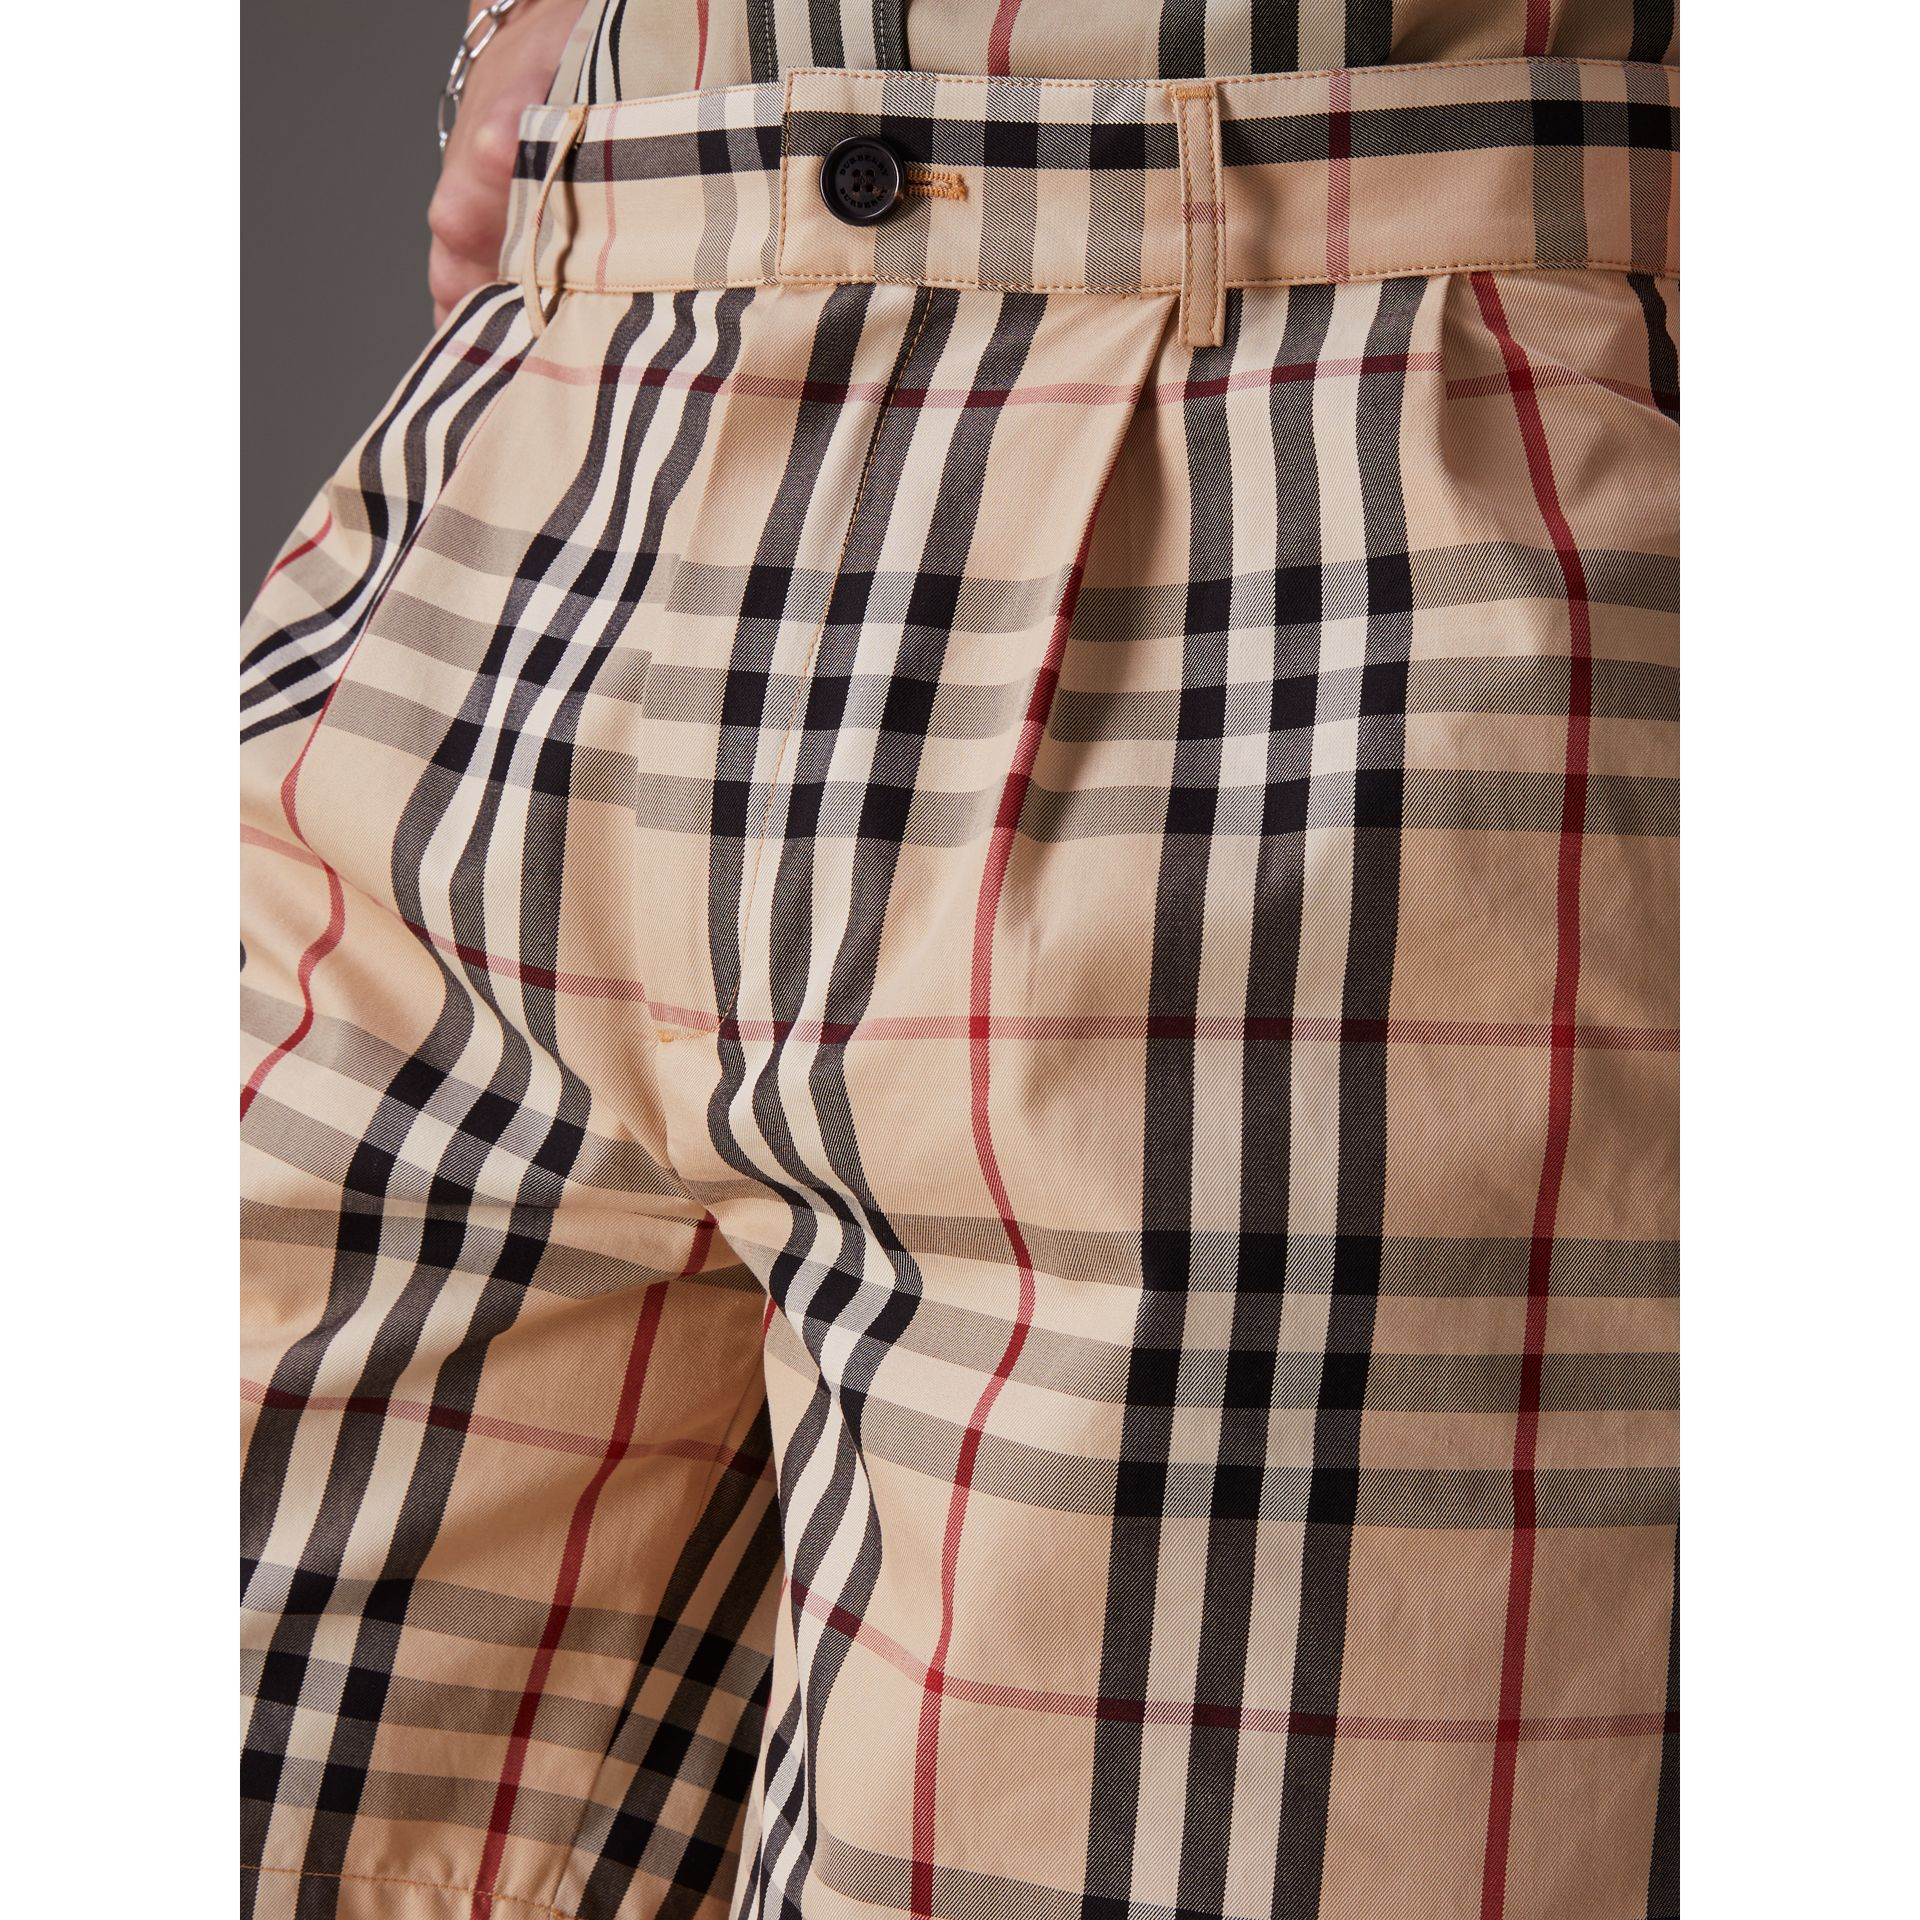 Gosha x Burberry Tailored Shorts in Honey | Burberry - gallery image 1